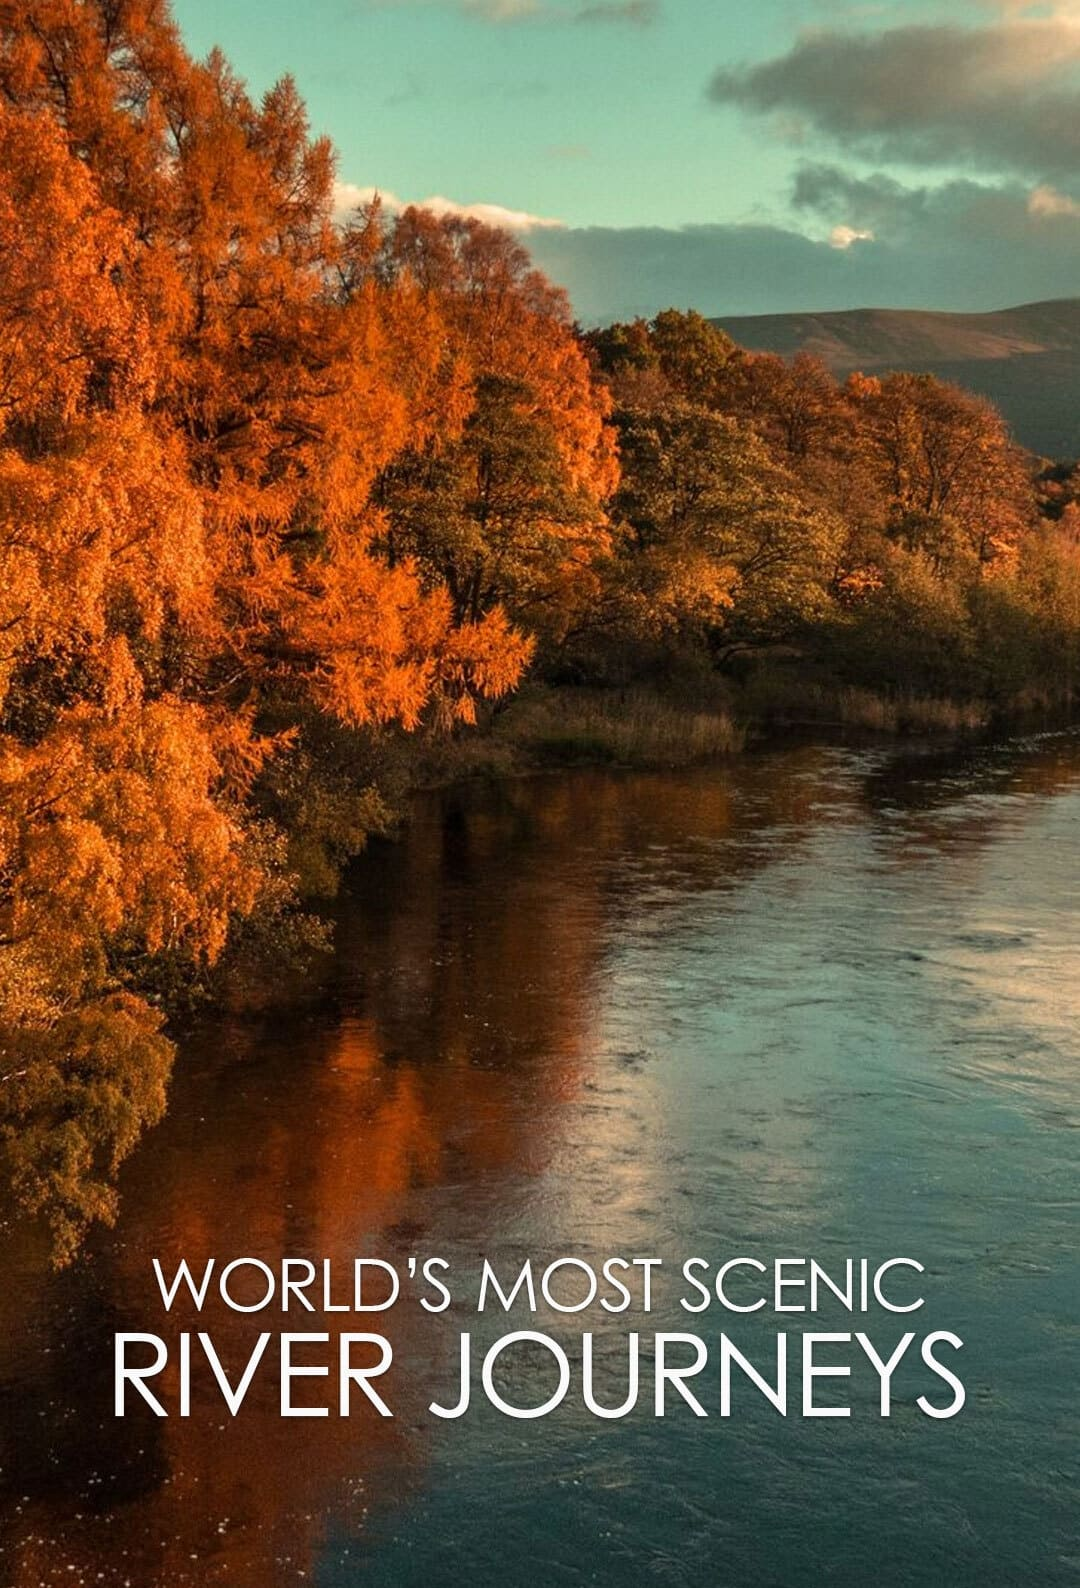 World's Most Scenic River Journeys TV Shows About Travel